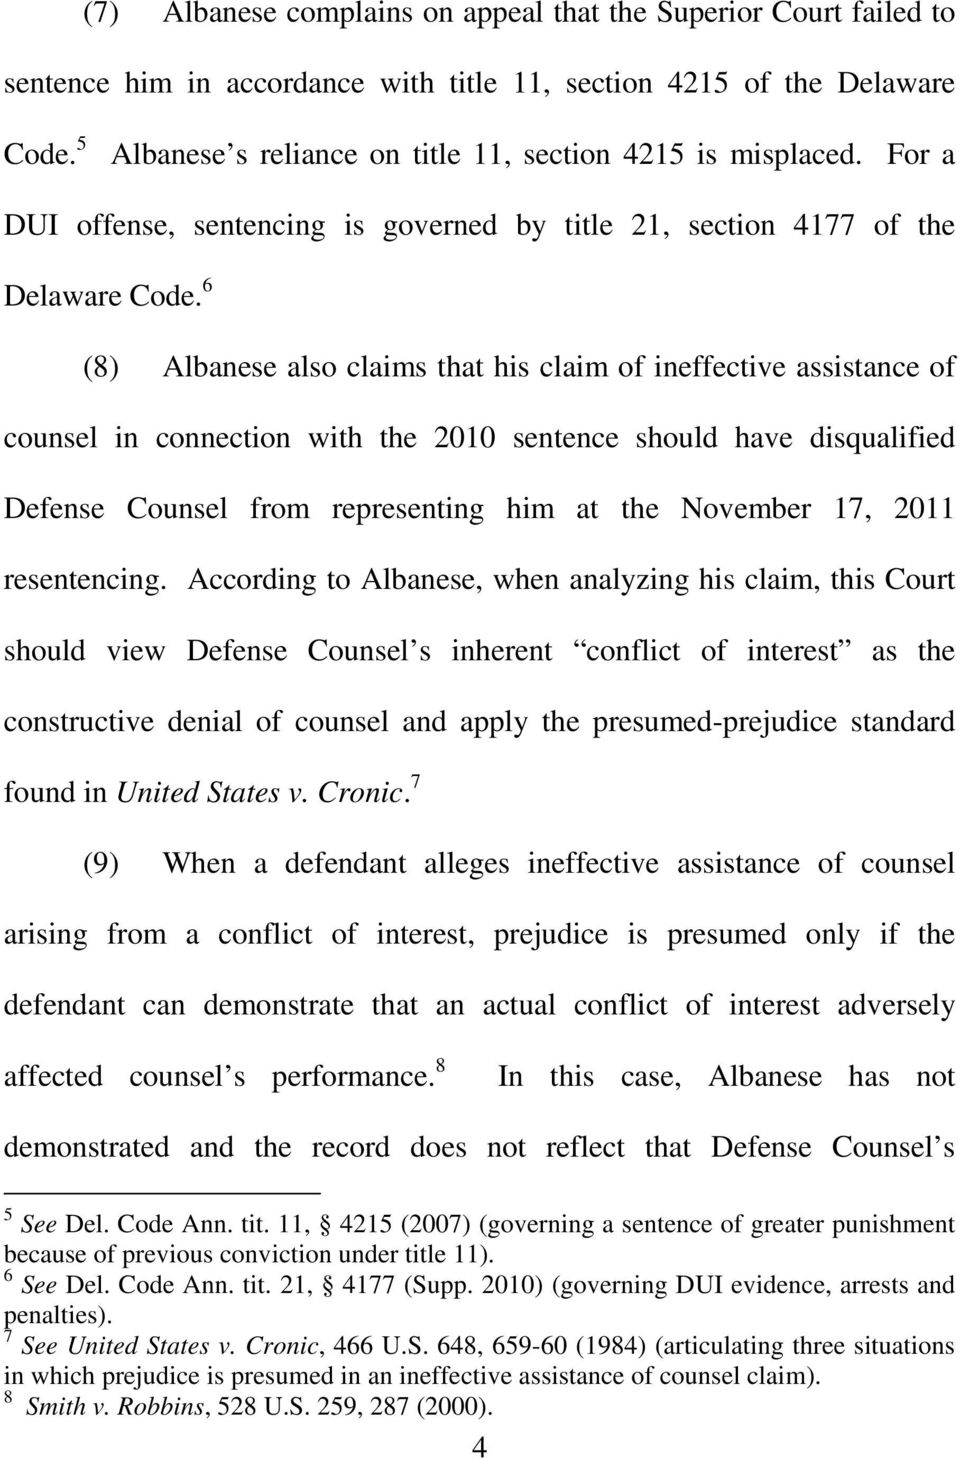 6 (8) Albanese also claims that his claim of ineffective assistance of counsel in connection with the 2010 sentence should have disqualified Defense Counsel from representing him at the November 17,